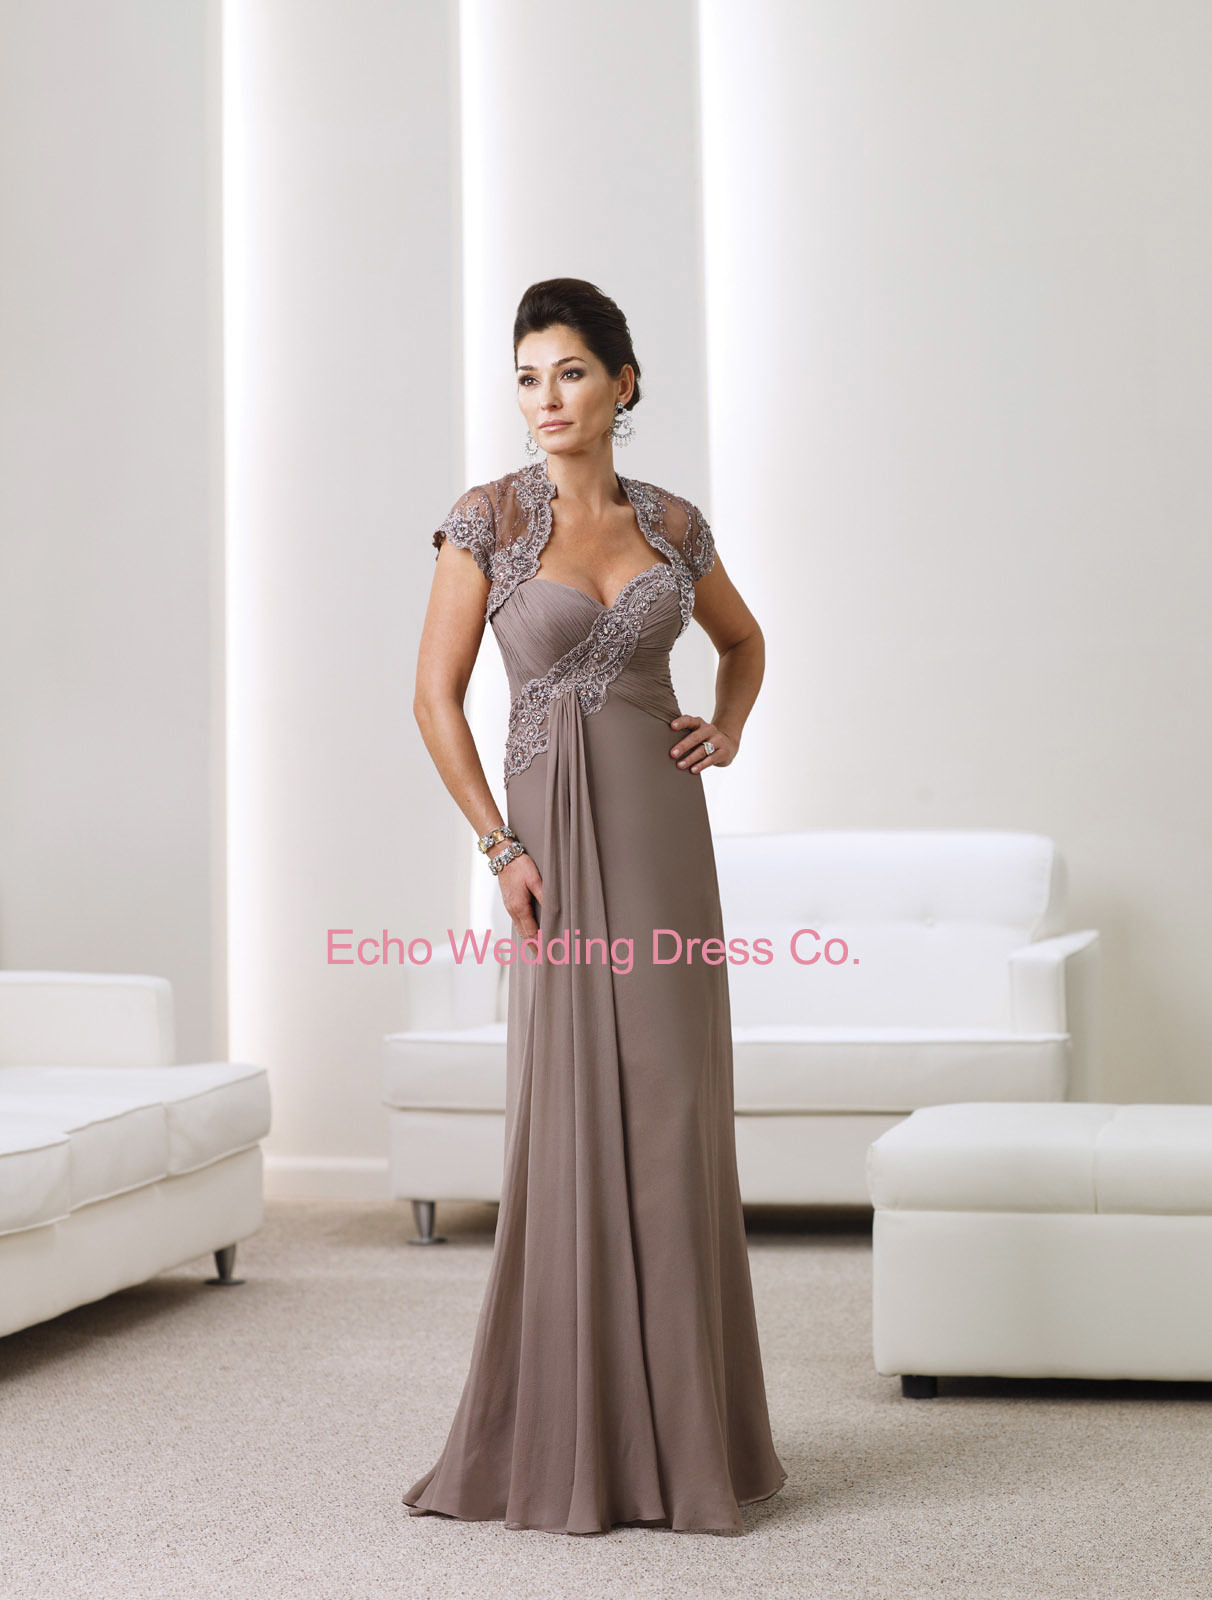 The bridal dresses mg12 china bridal mother dress mother s dress